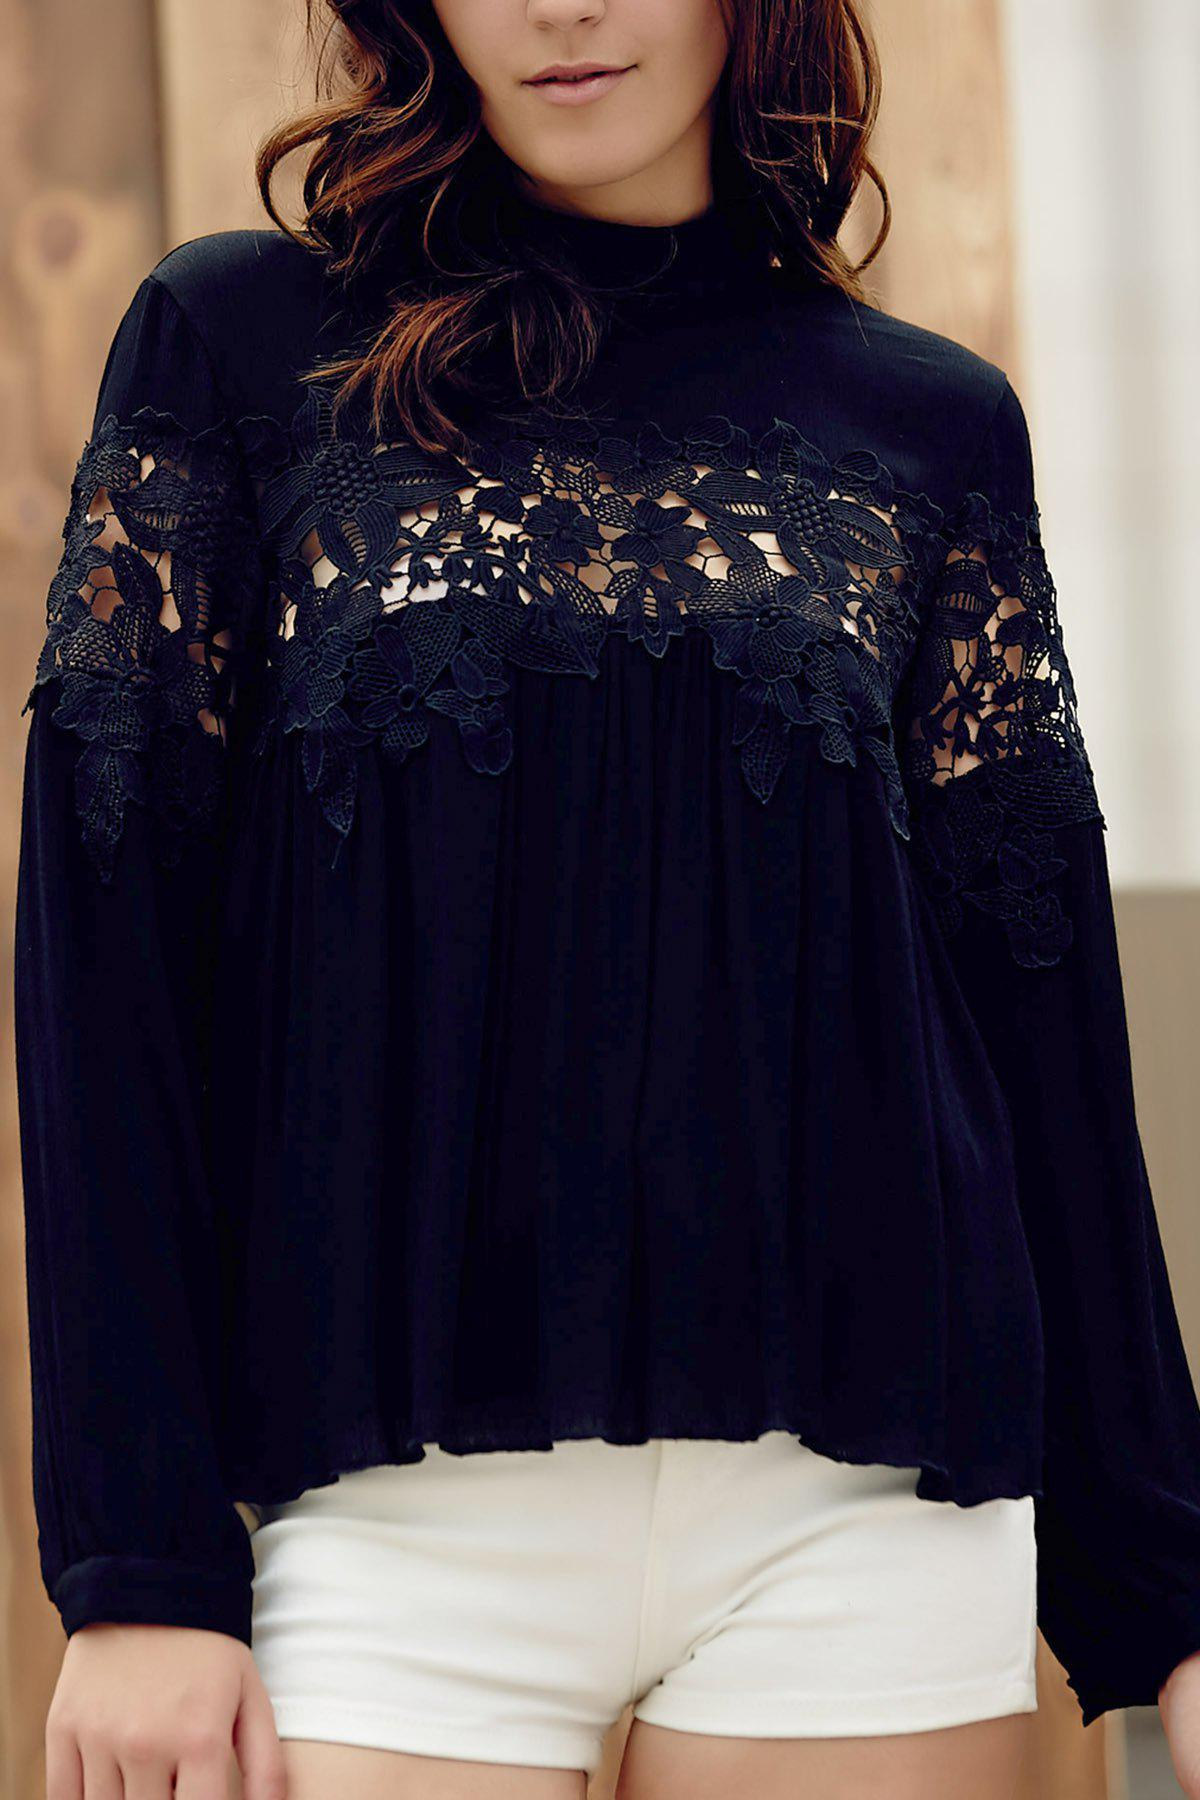 Lace Spliced Stand Collar Long Sleeve Black Blouse 171264303